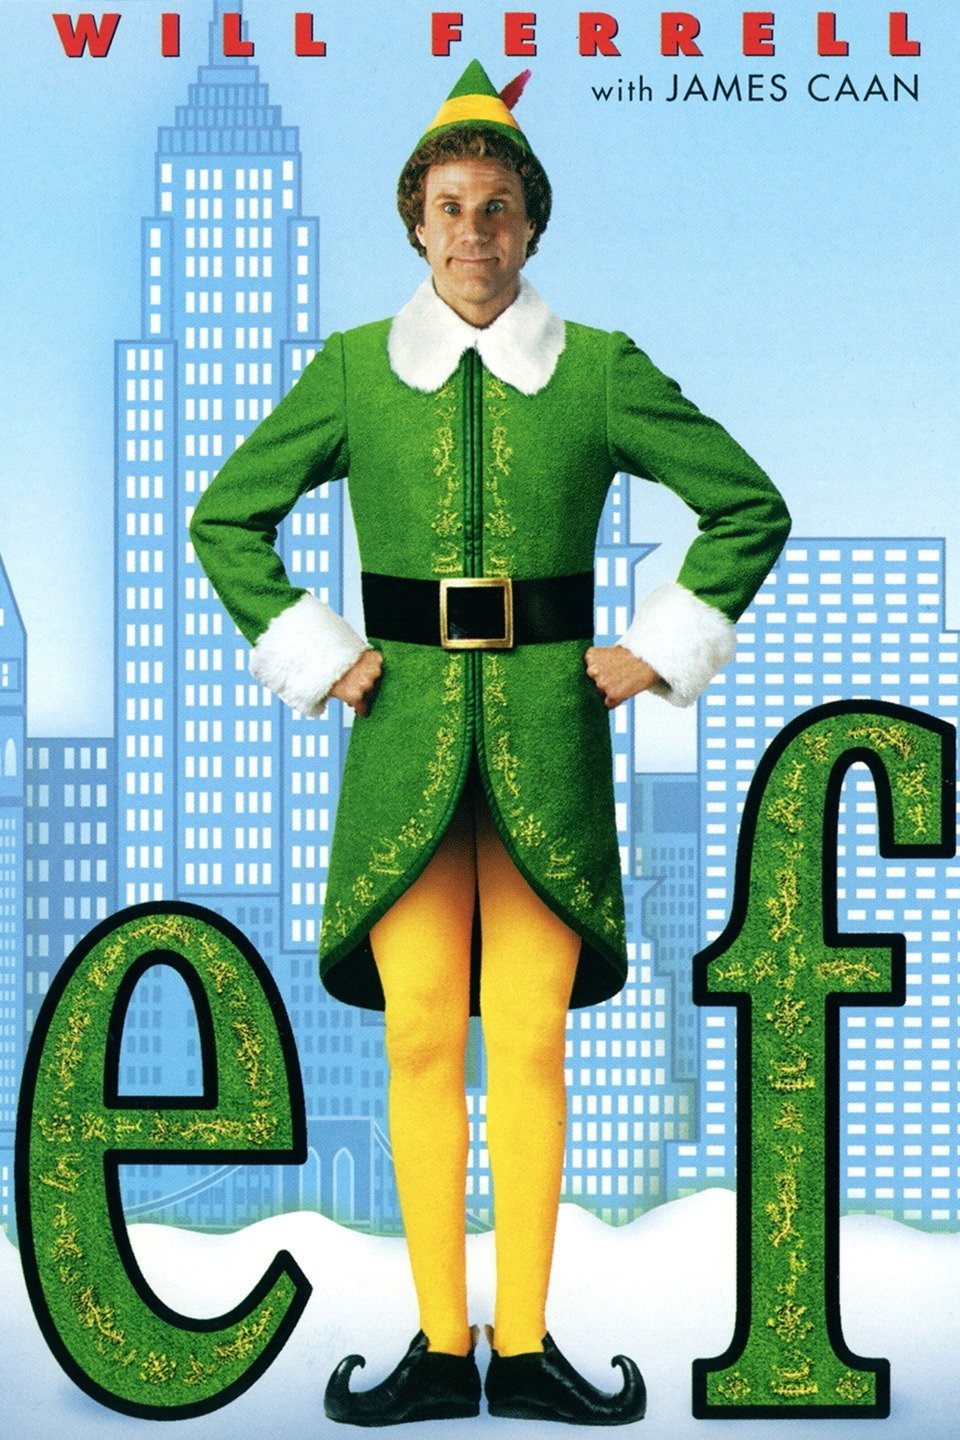 Elf - For cotton headed ninny muggins everywhere. Elf is such a delightful Christmas movie. We may have been late to the Elf party, only discovering this gem a few years back thanks to my Goddaughter, but since then it's become a Christmas staple.